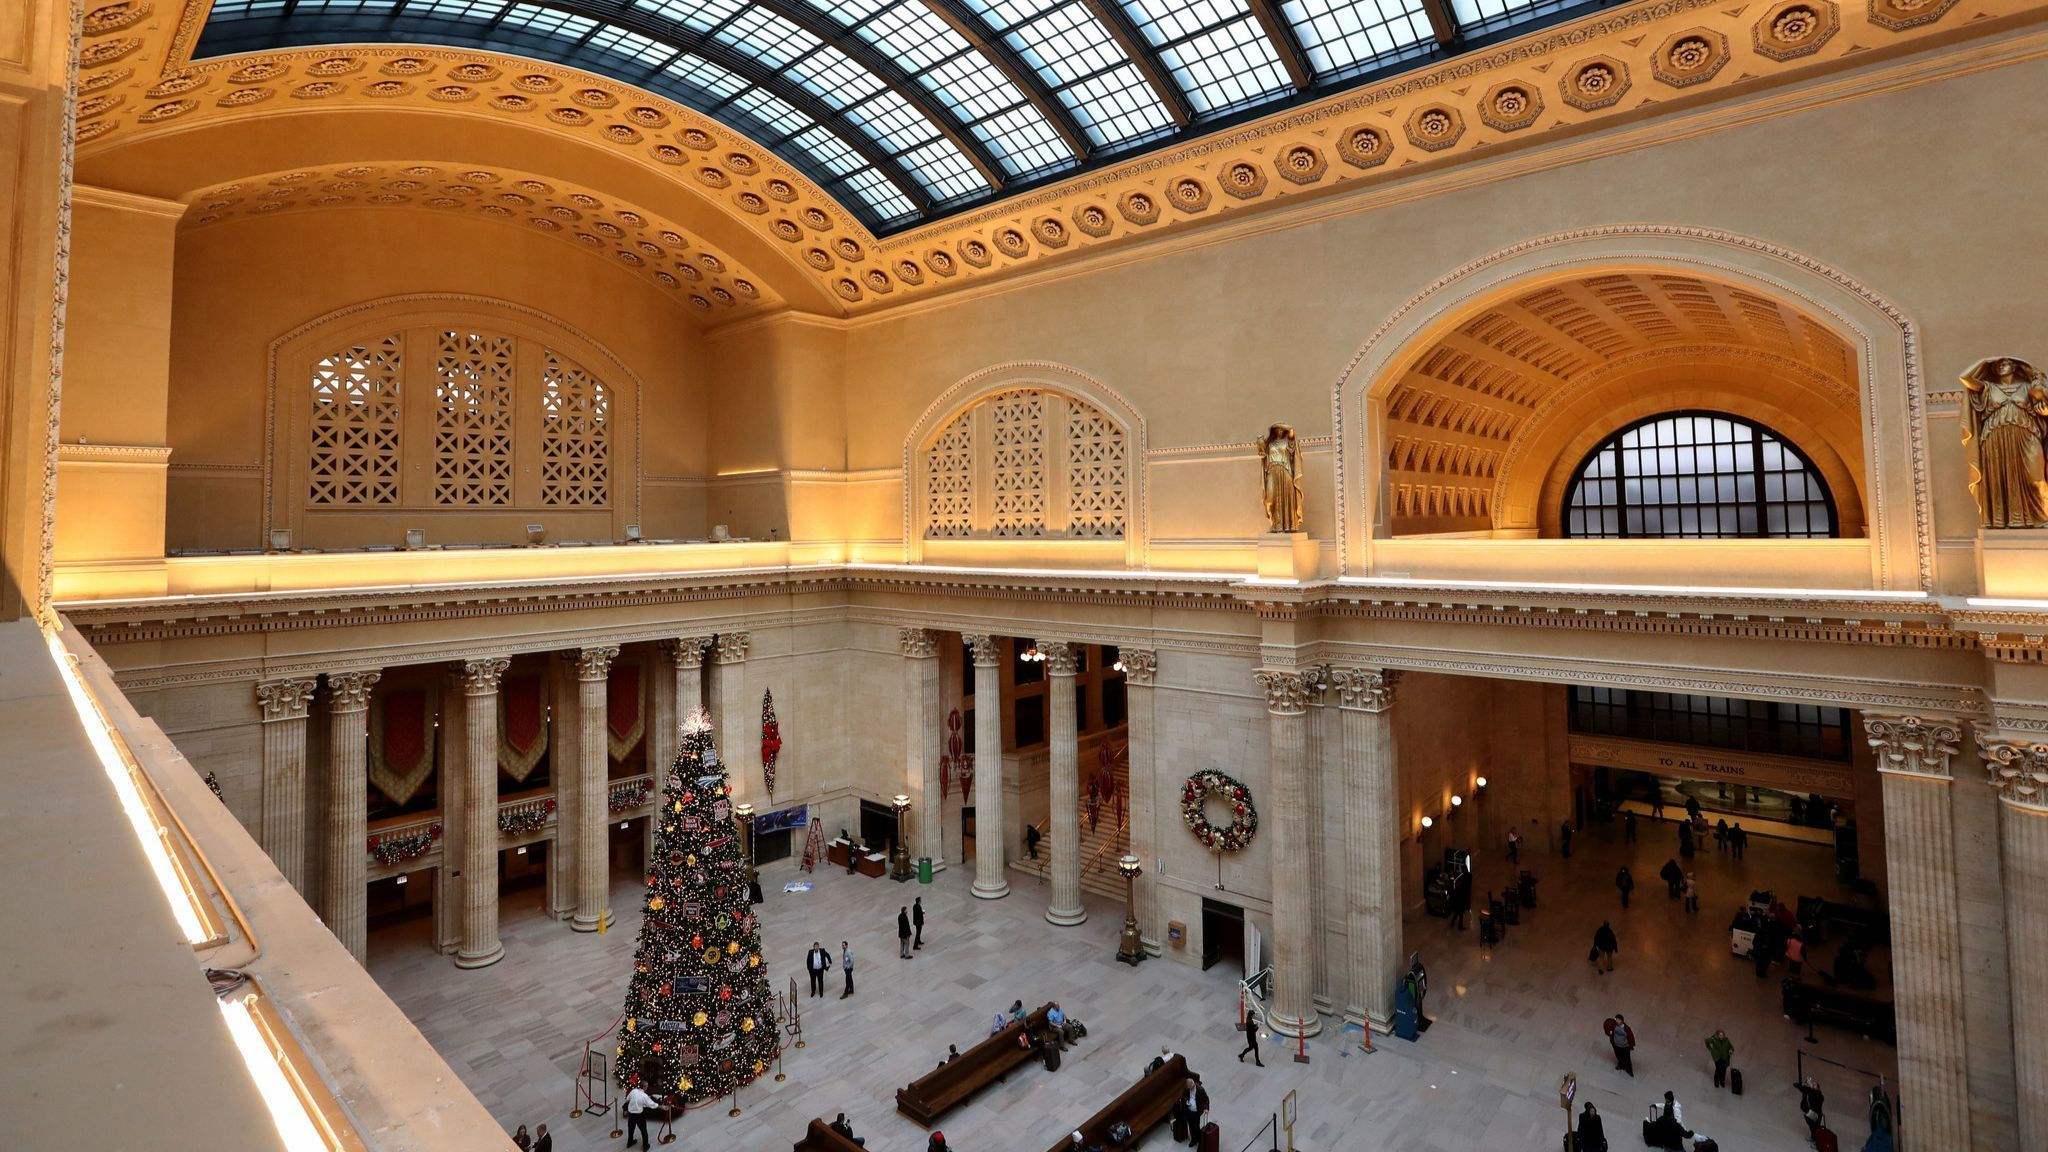 Why are they building a squash court in Union Station's Great Hall?